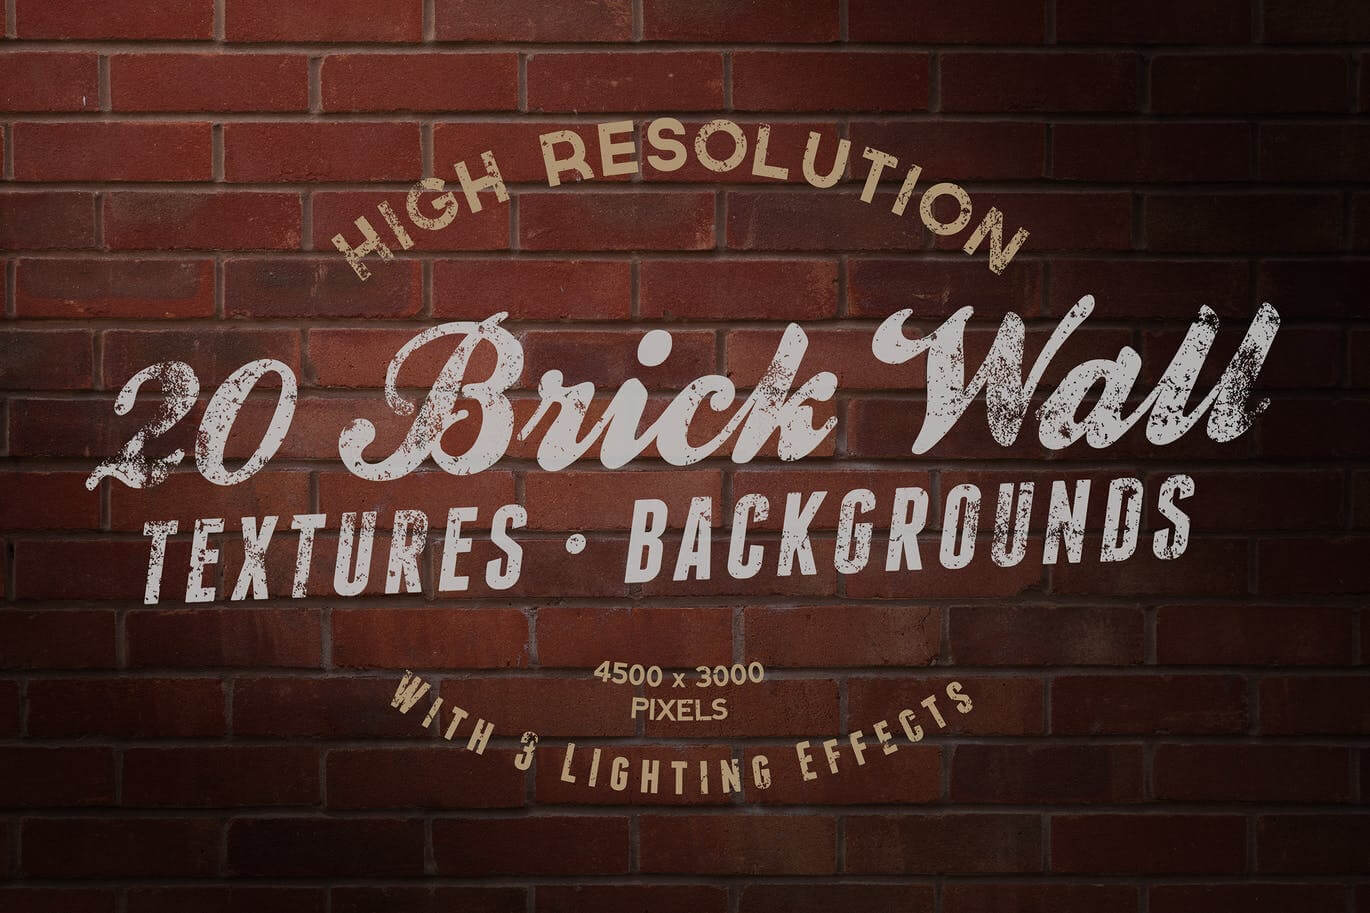 Brick Wall Textures Backgrounds